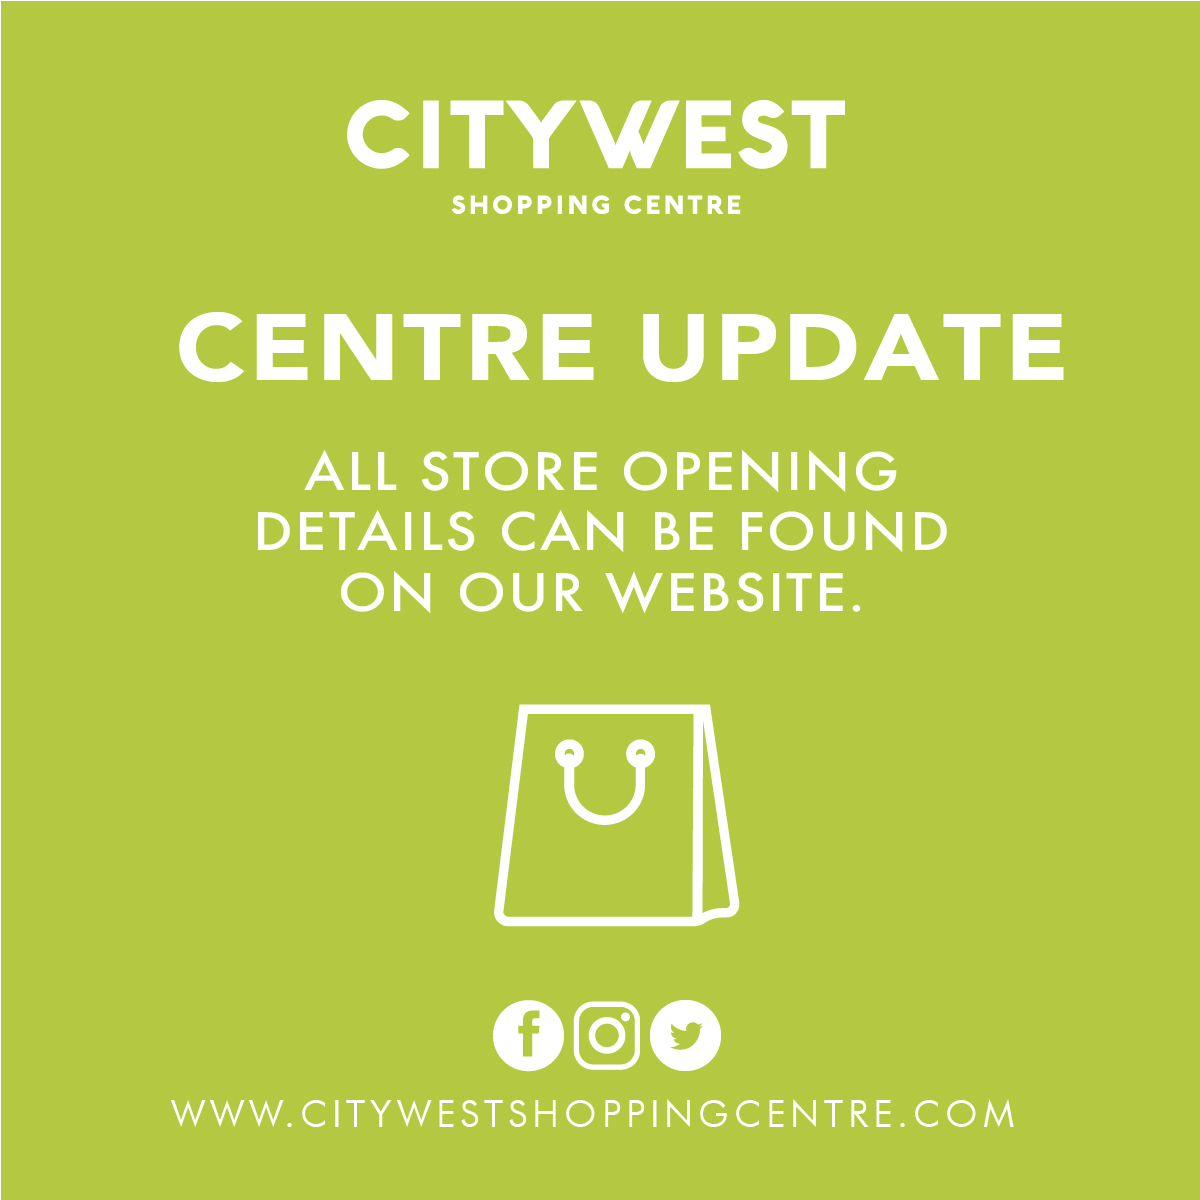 Stores at Citywest Shopping Centre are Open!